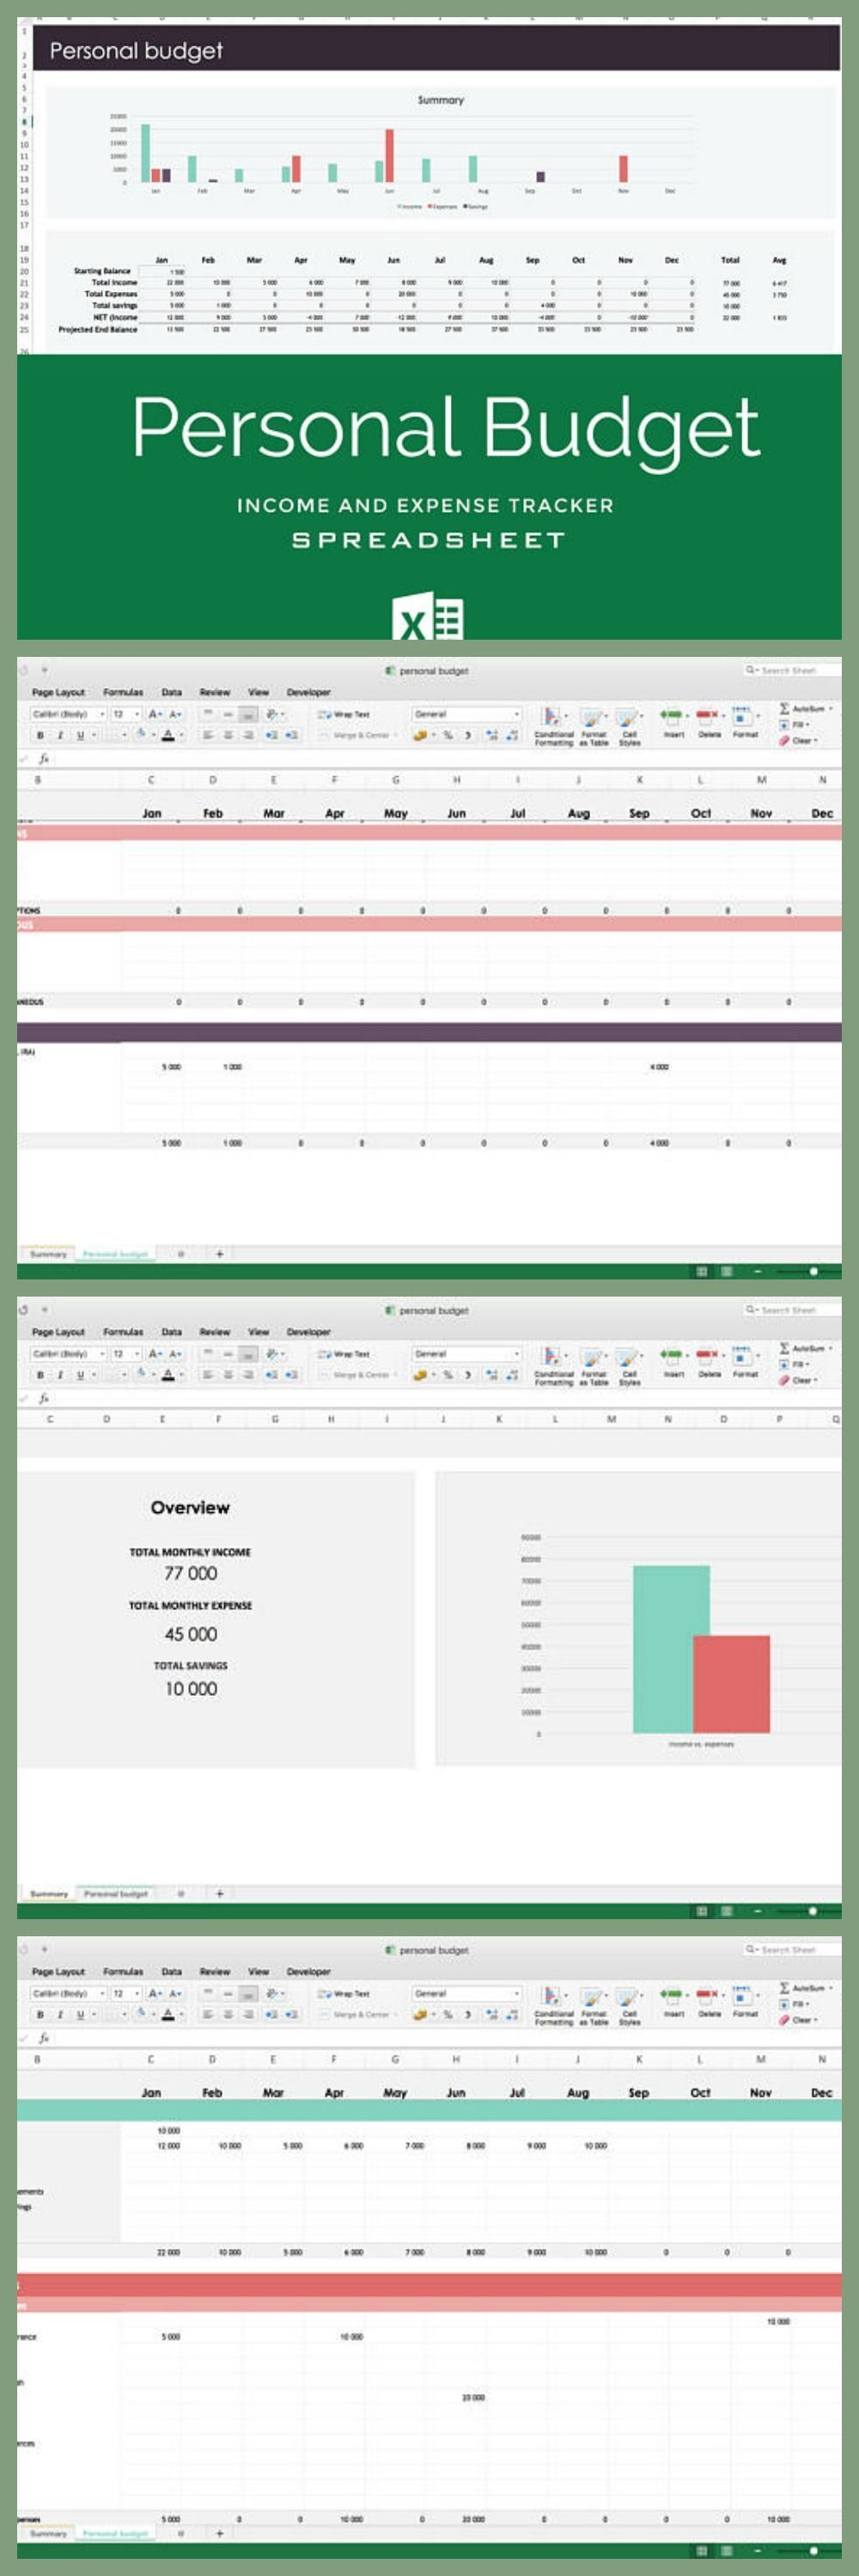 Budget spreadsheet Excel template for personal budget